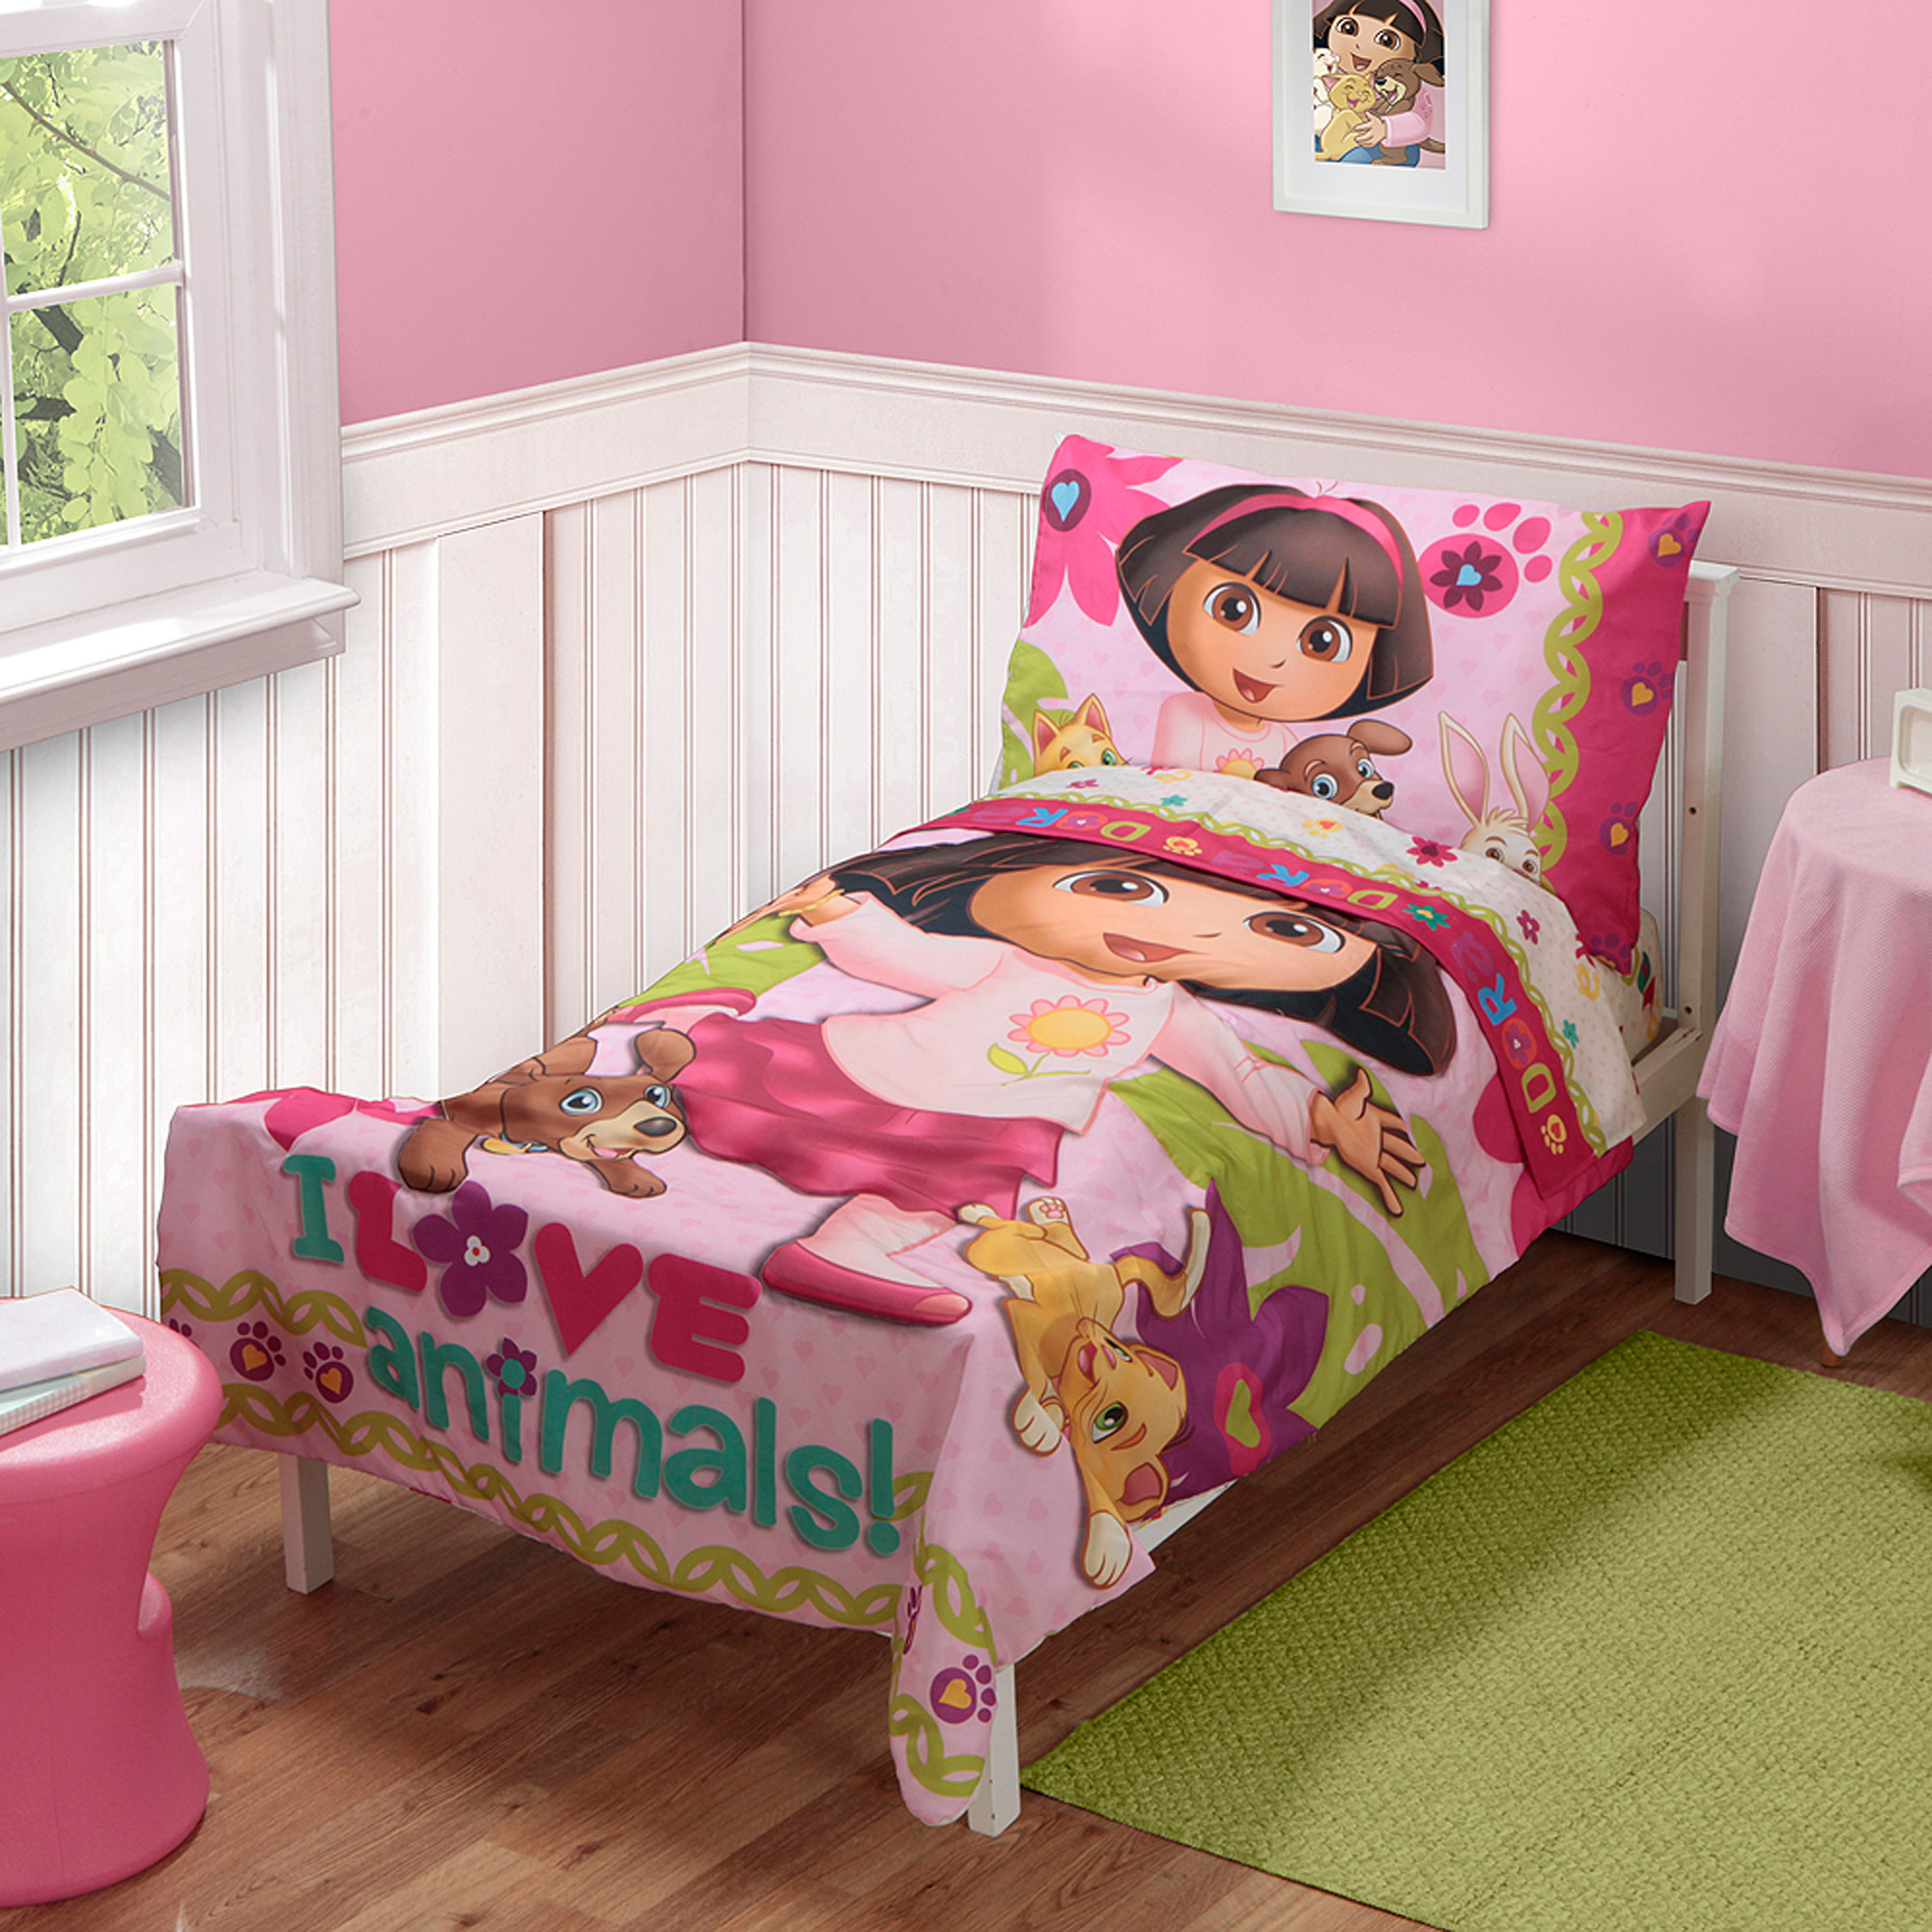 Nickelodeon - Dora the Explorer Pets 3pc Toddler Bedding Set with BONUS Matching Pillow Case